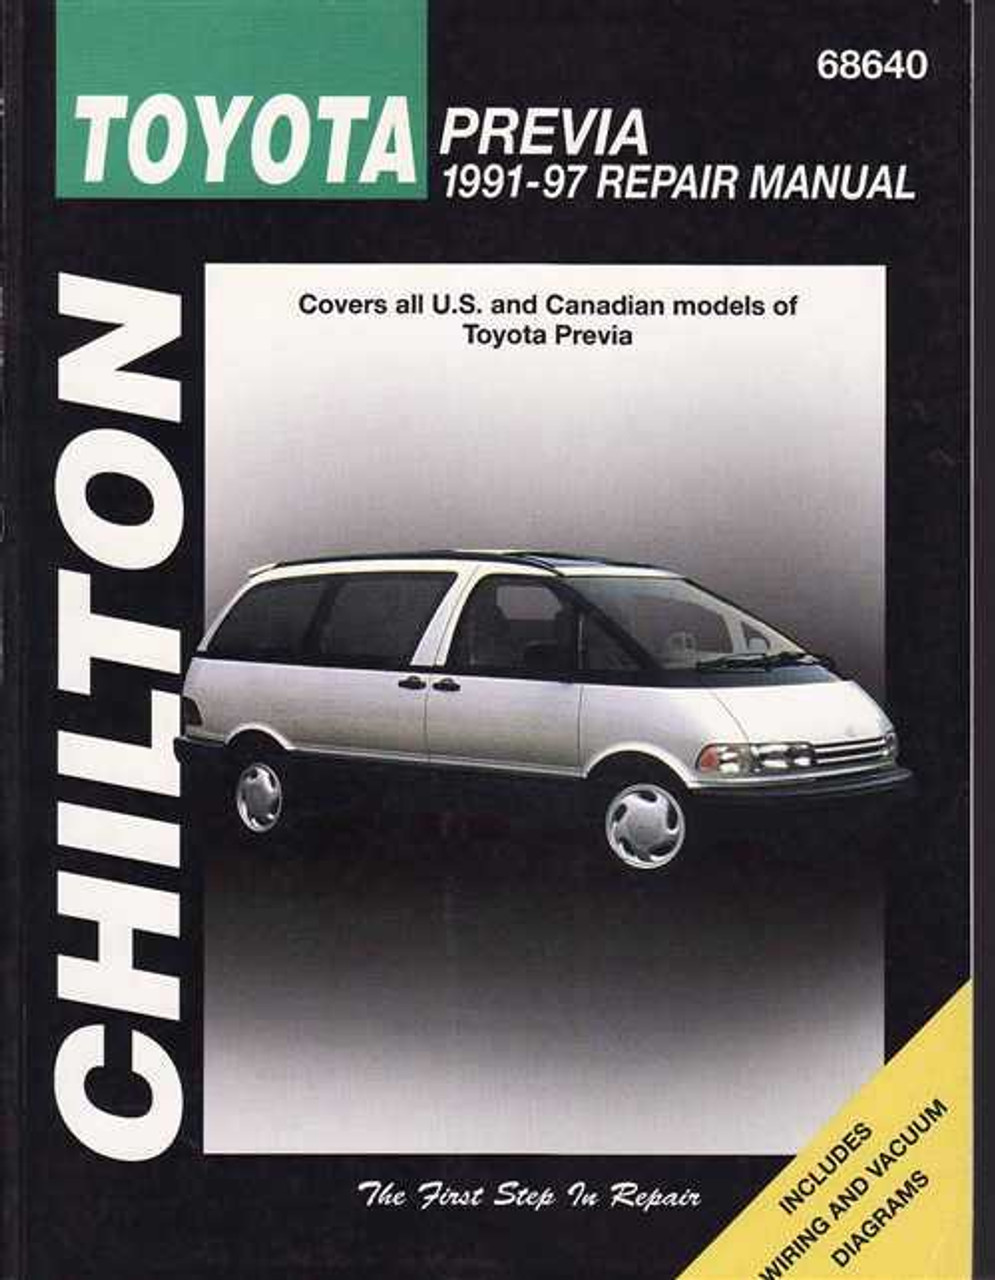 toyota tarago previa 1991 1997 workshop manual rh automotobookshop com au toyota previa owners manual 2003 toyota previa service manual download